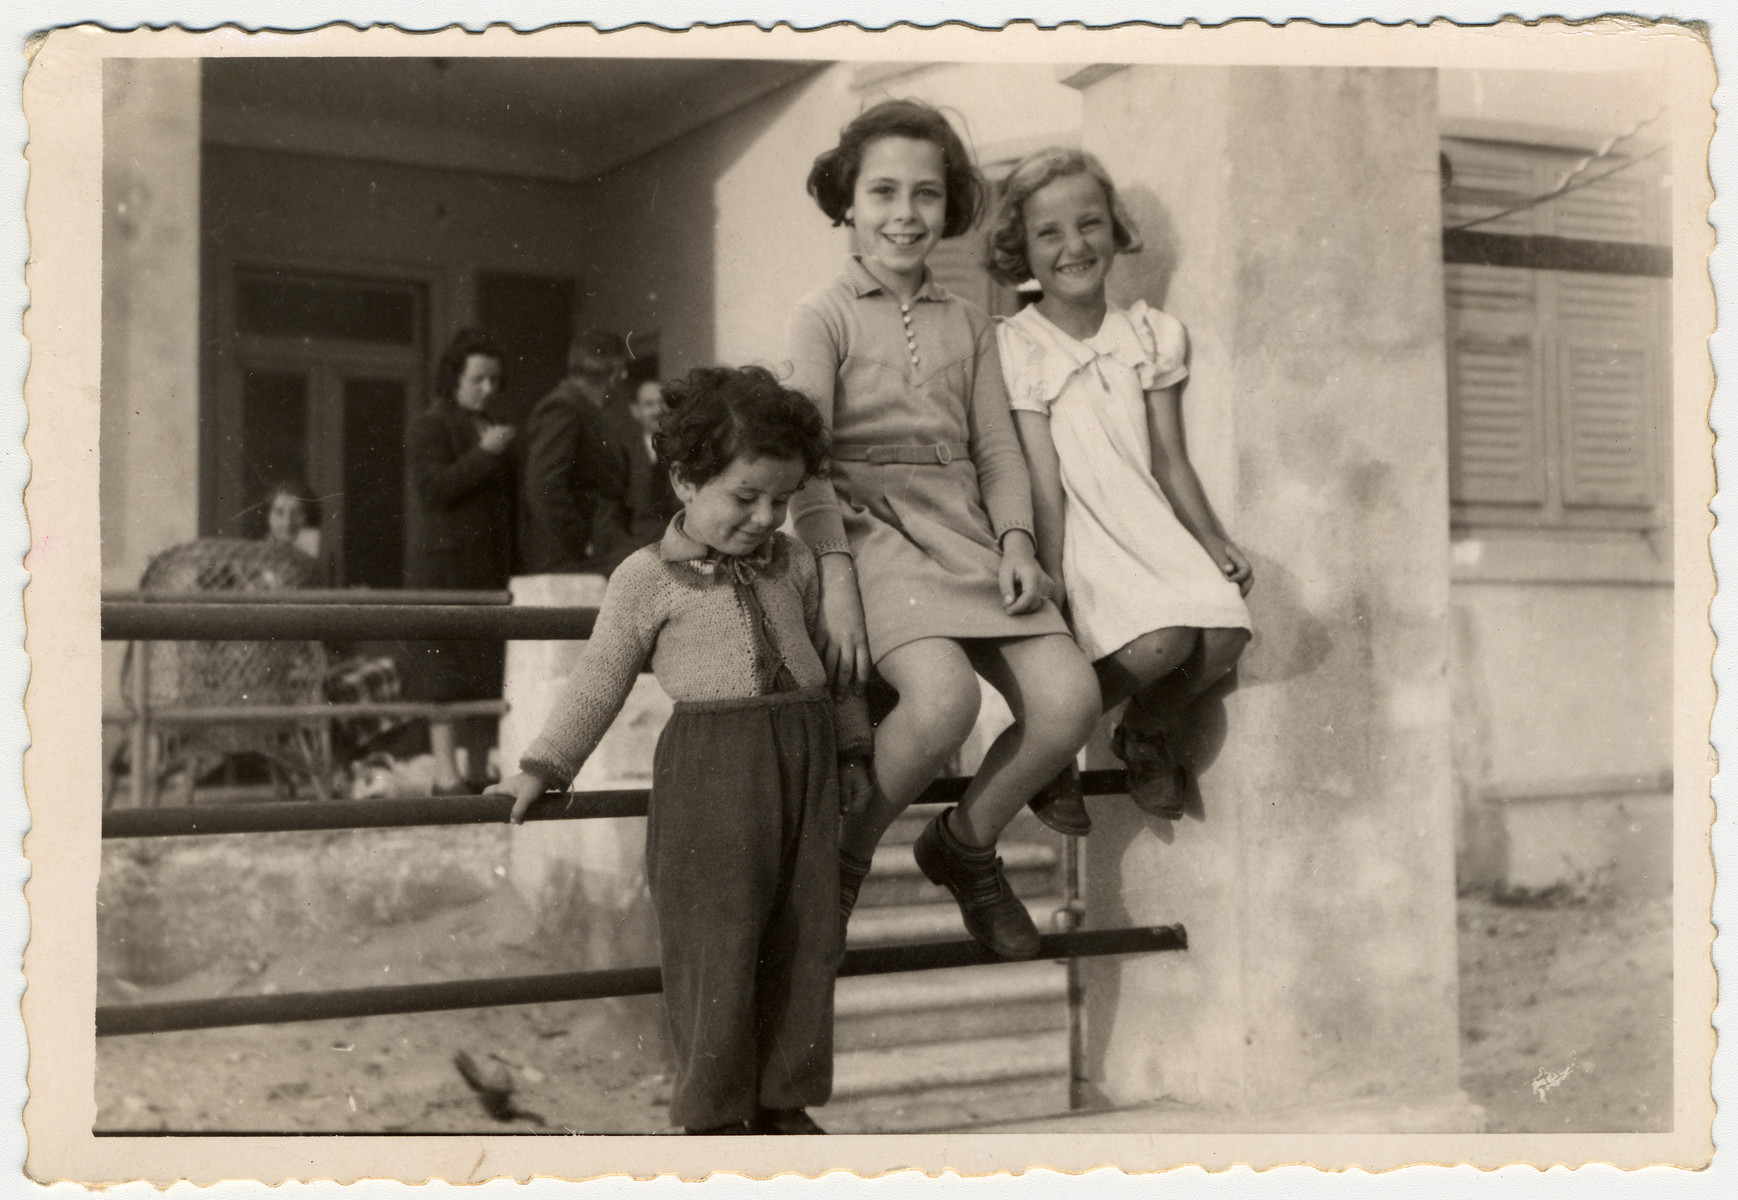 Three German or Austrian Jewish children living in Albania as refugees sit on the railing of a home.  Pictured in the center is Johanna Gerechter.  Seated to her right is Trude Kraus.  The woman on the left behind the chair is Finny Mandel and the man on the right is Hans Krahl.